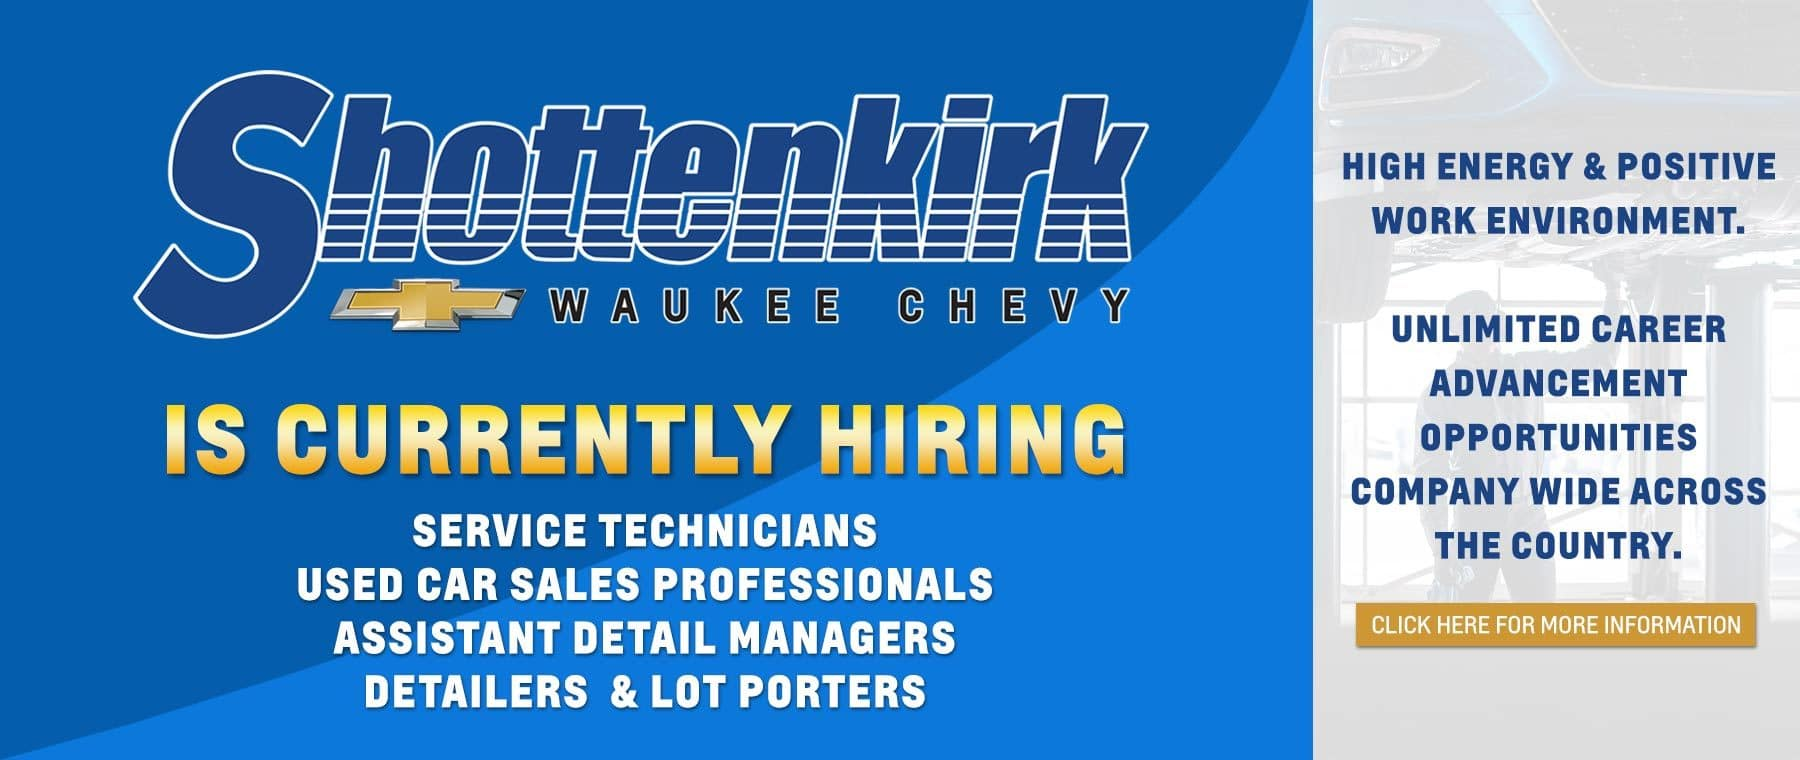 currently hiring